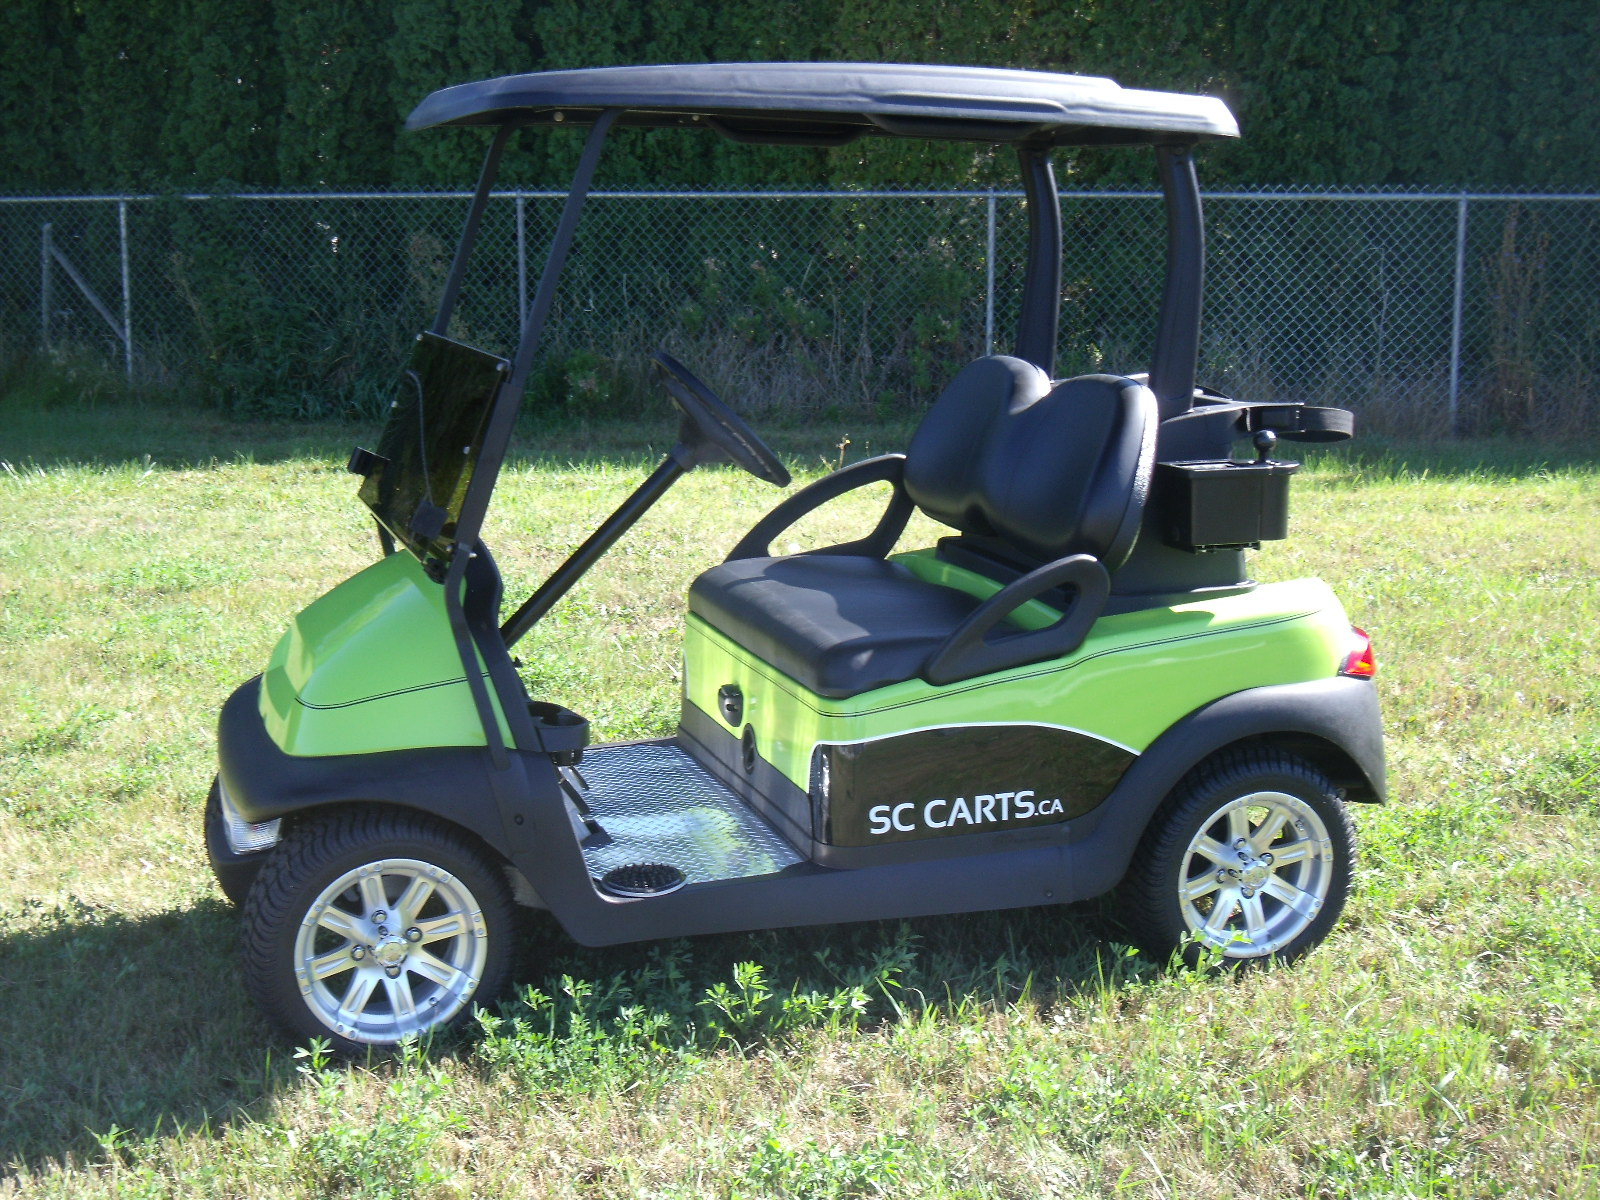 Ca car color combos - This Color Combo Really Makes The Precedent Standout This Cart